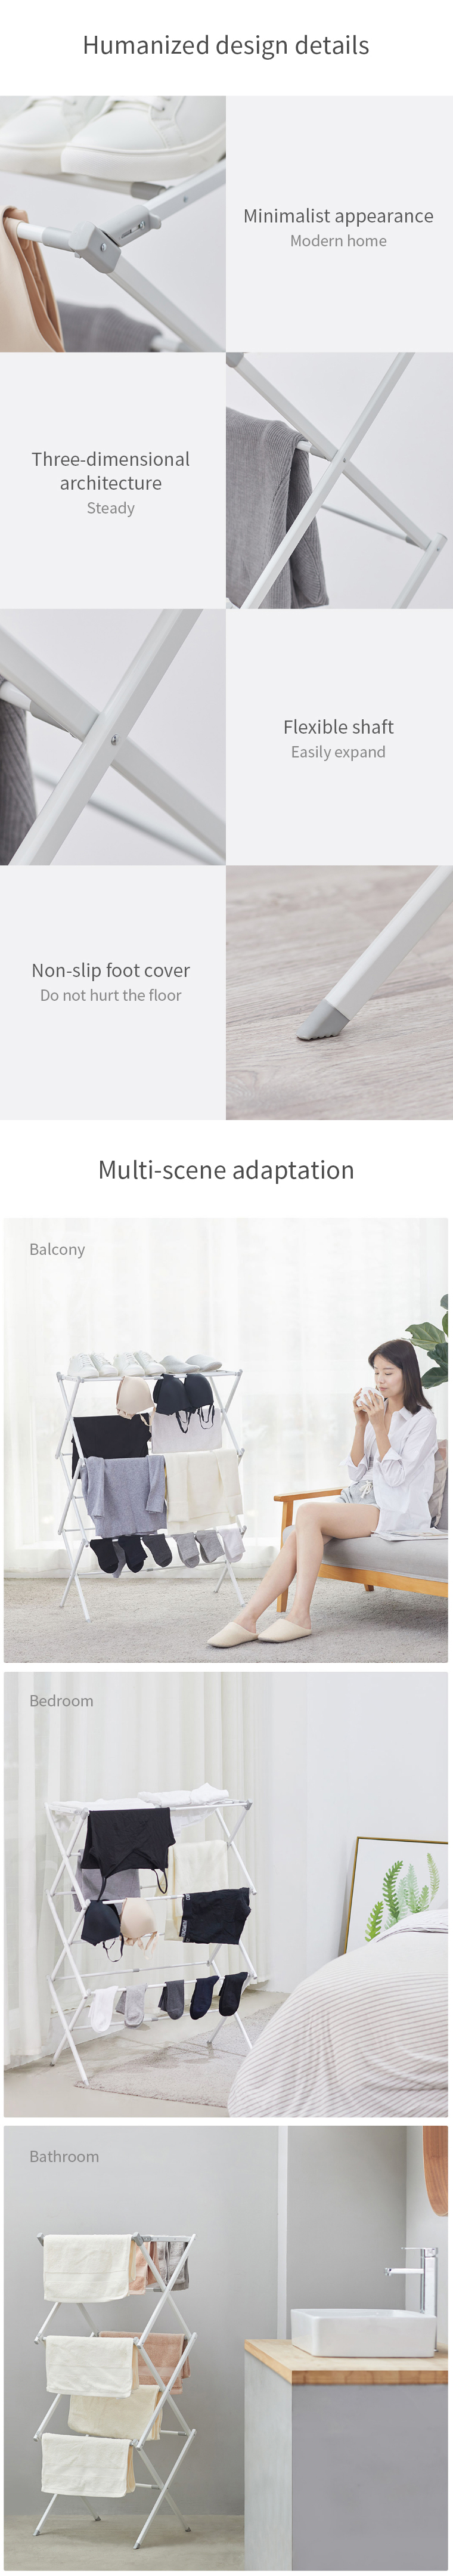 XIAOMI MR. BOND X Folding Drying Rack Modern Floor Holder Standing Rust-Proof Indoor Cloth Hanger Balcony Multi-Function Drying Rack